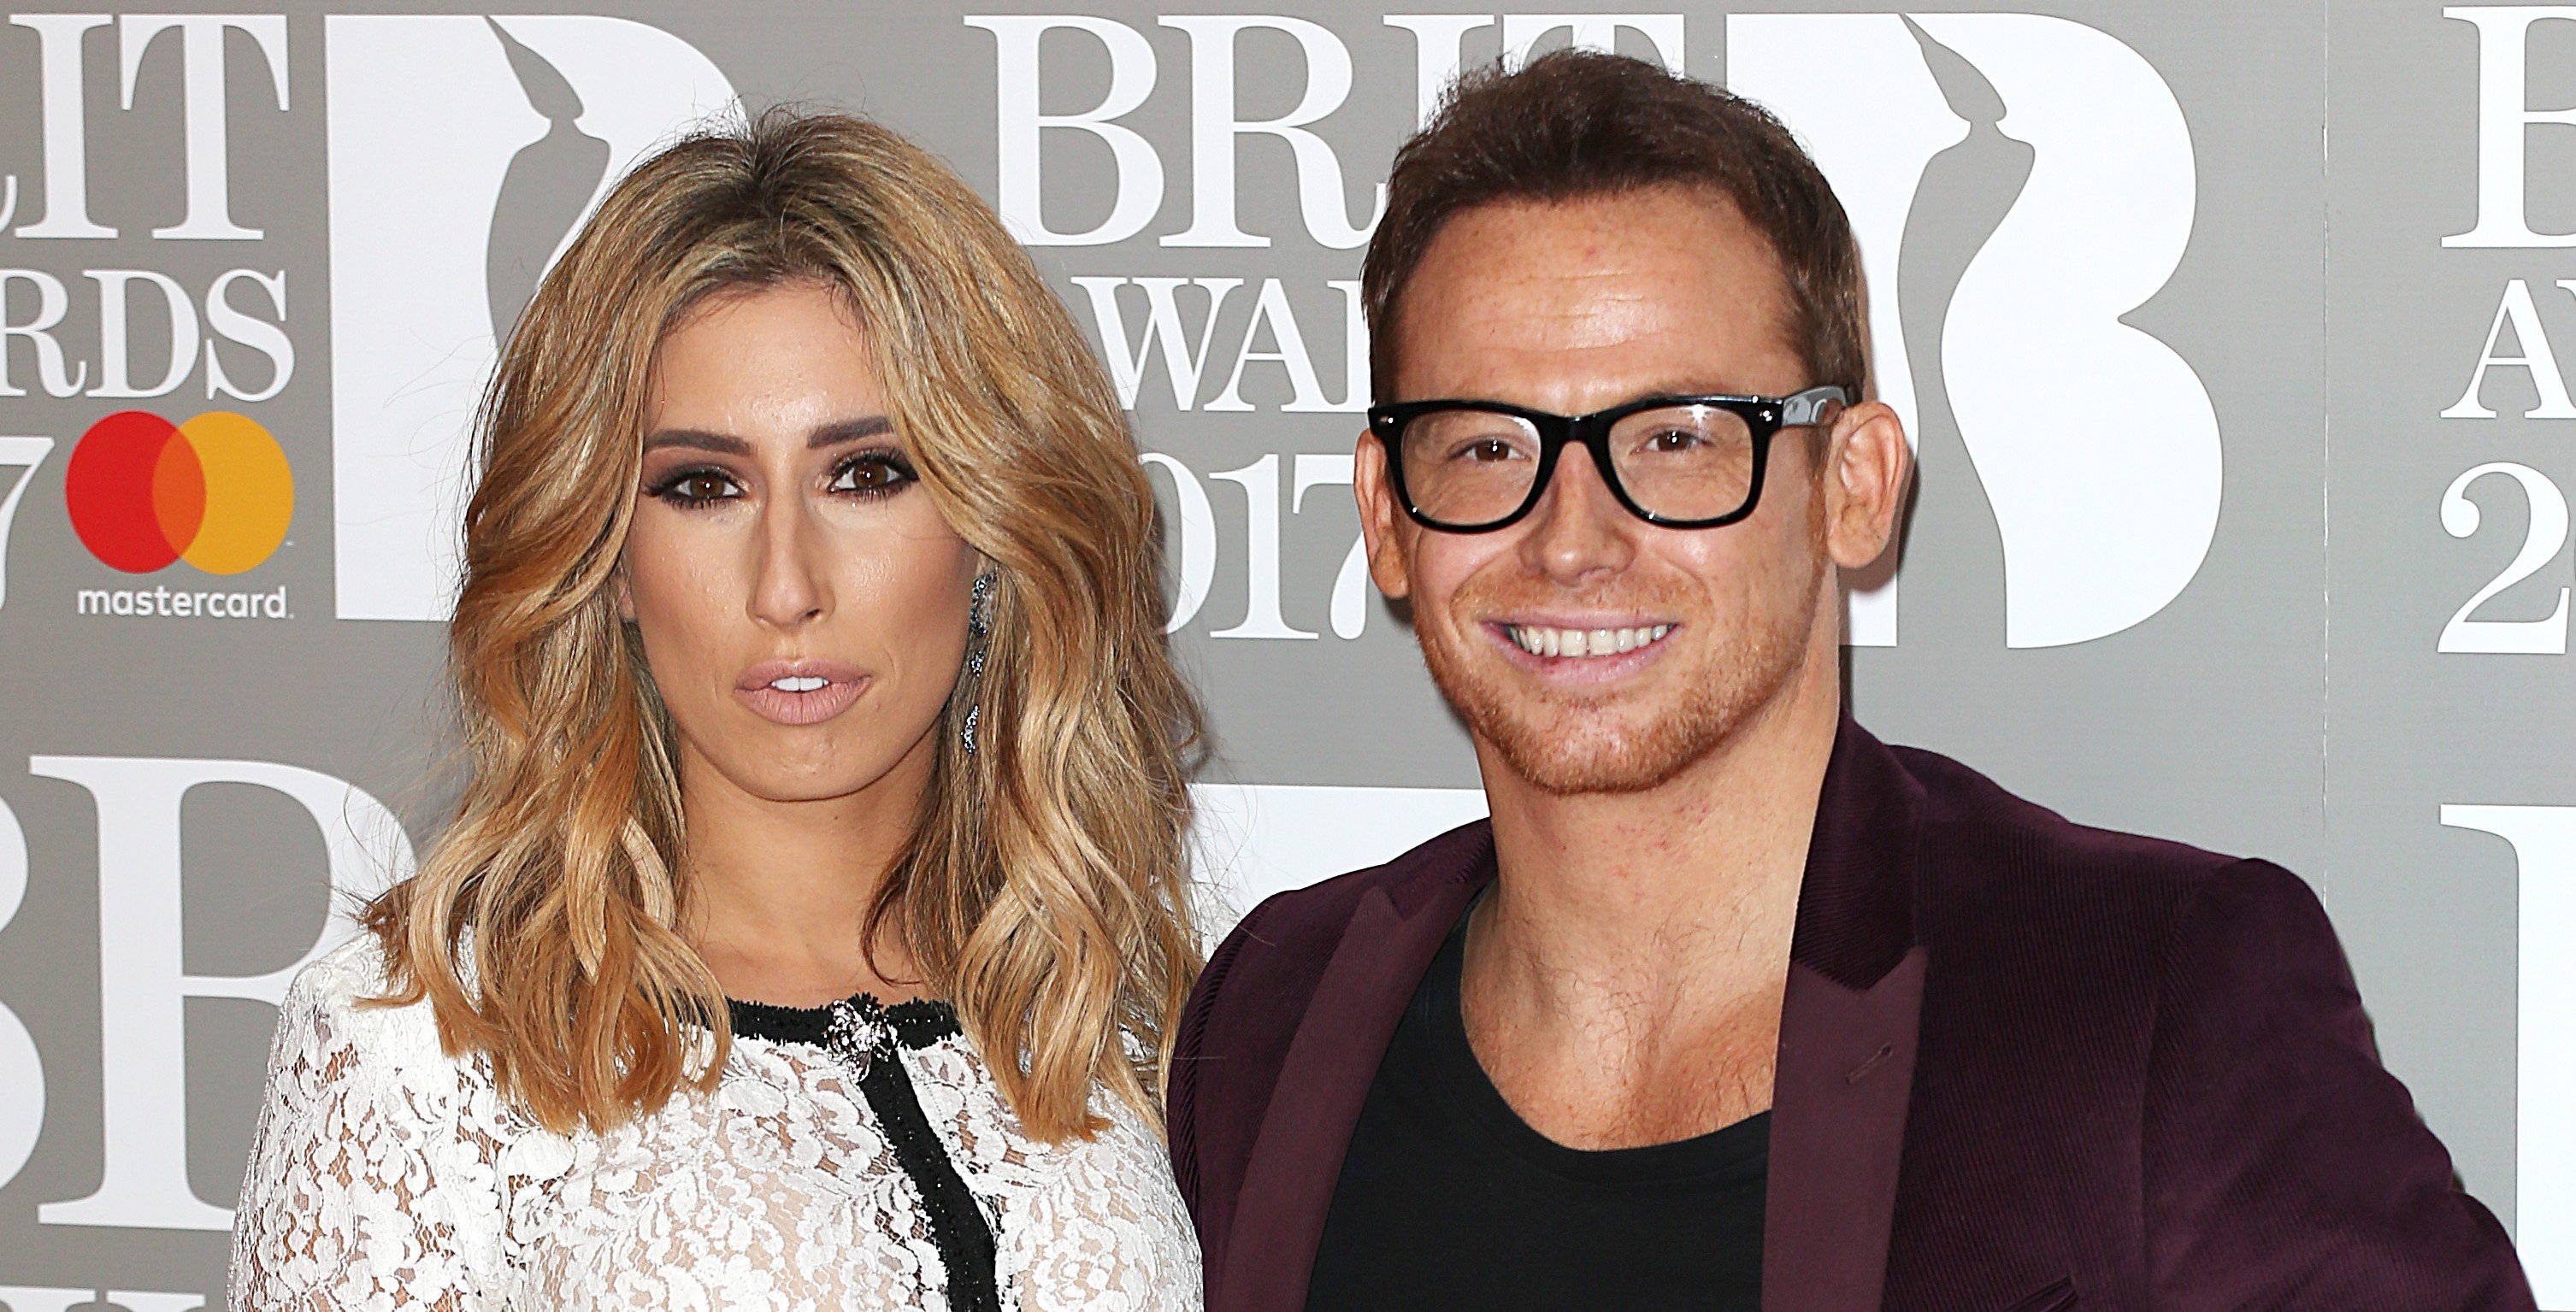 The meaning behind Stacey Solomon and Joe Swash's son's name